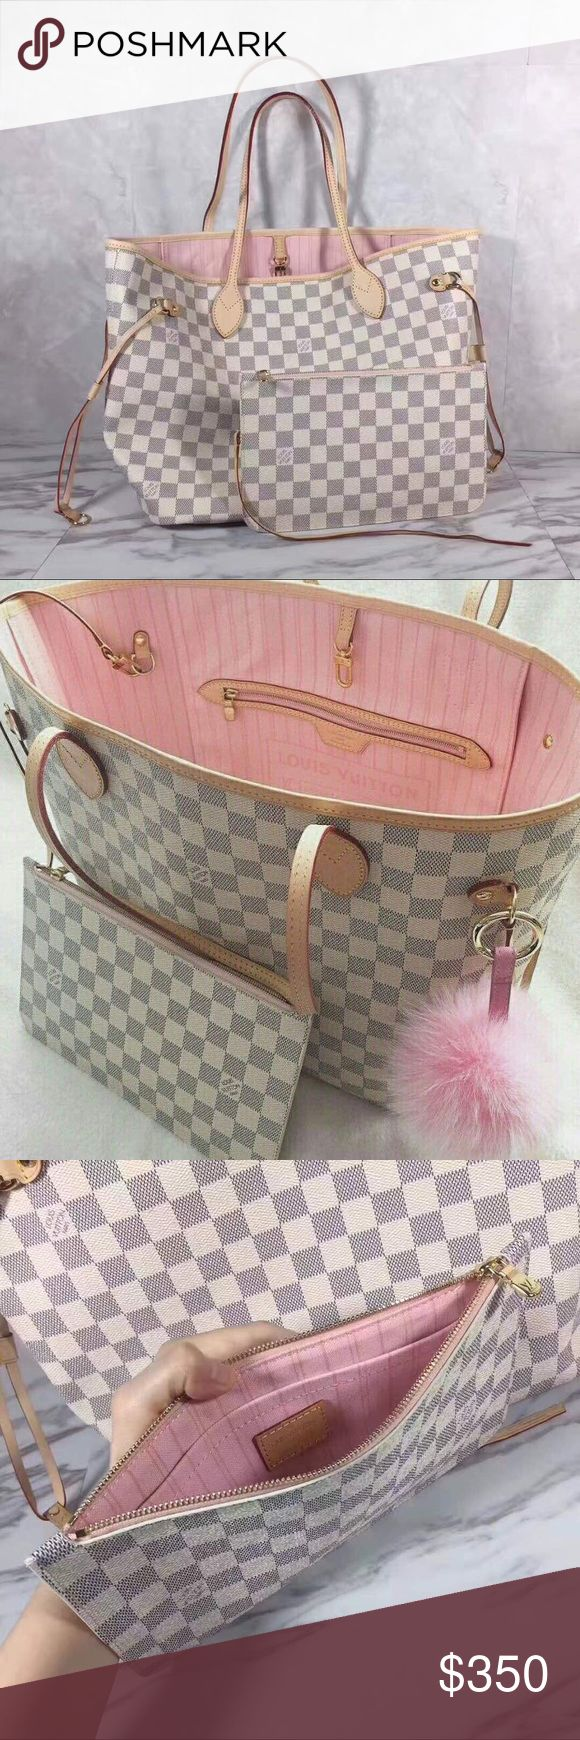 **DO NOT BUY ~ PRE ORDER ONLY** this is an absolutely flawless bag  style : neverfull  damier azur canvas with pink interior ! ❤️ comes with dust bag!  available for pre order (️️ ONLY) , this bag is very nice  please don't ask the o b v i o u s  xoxo {FREE SHIPPING } Louis Vuitton Bags Shoulder Bags